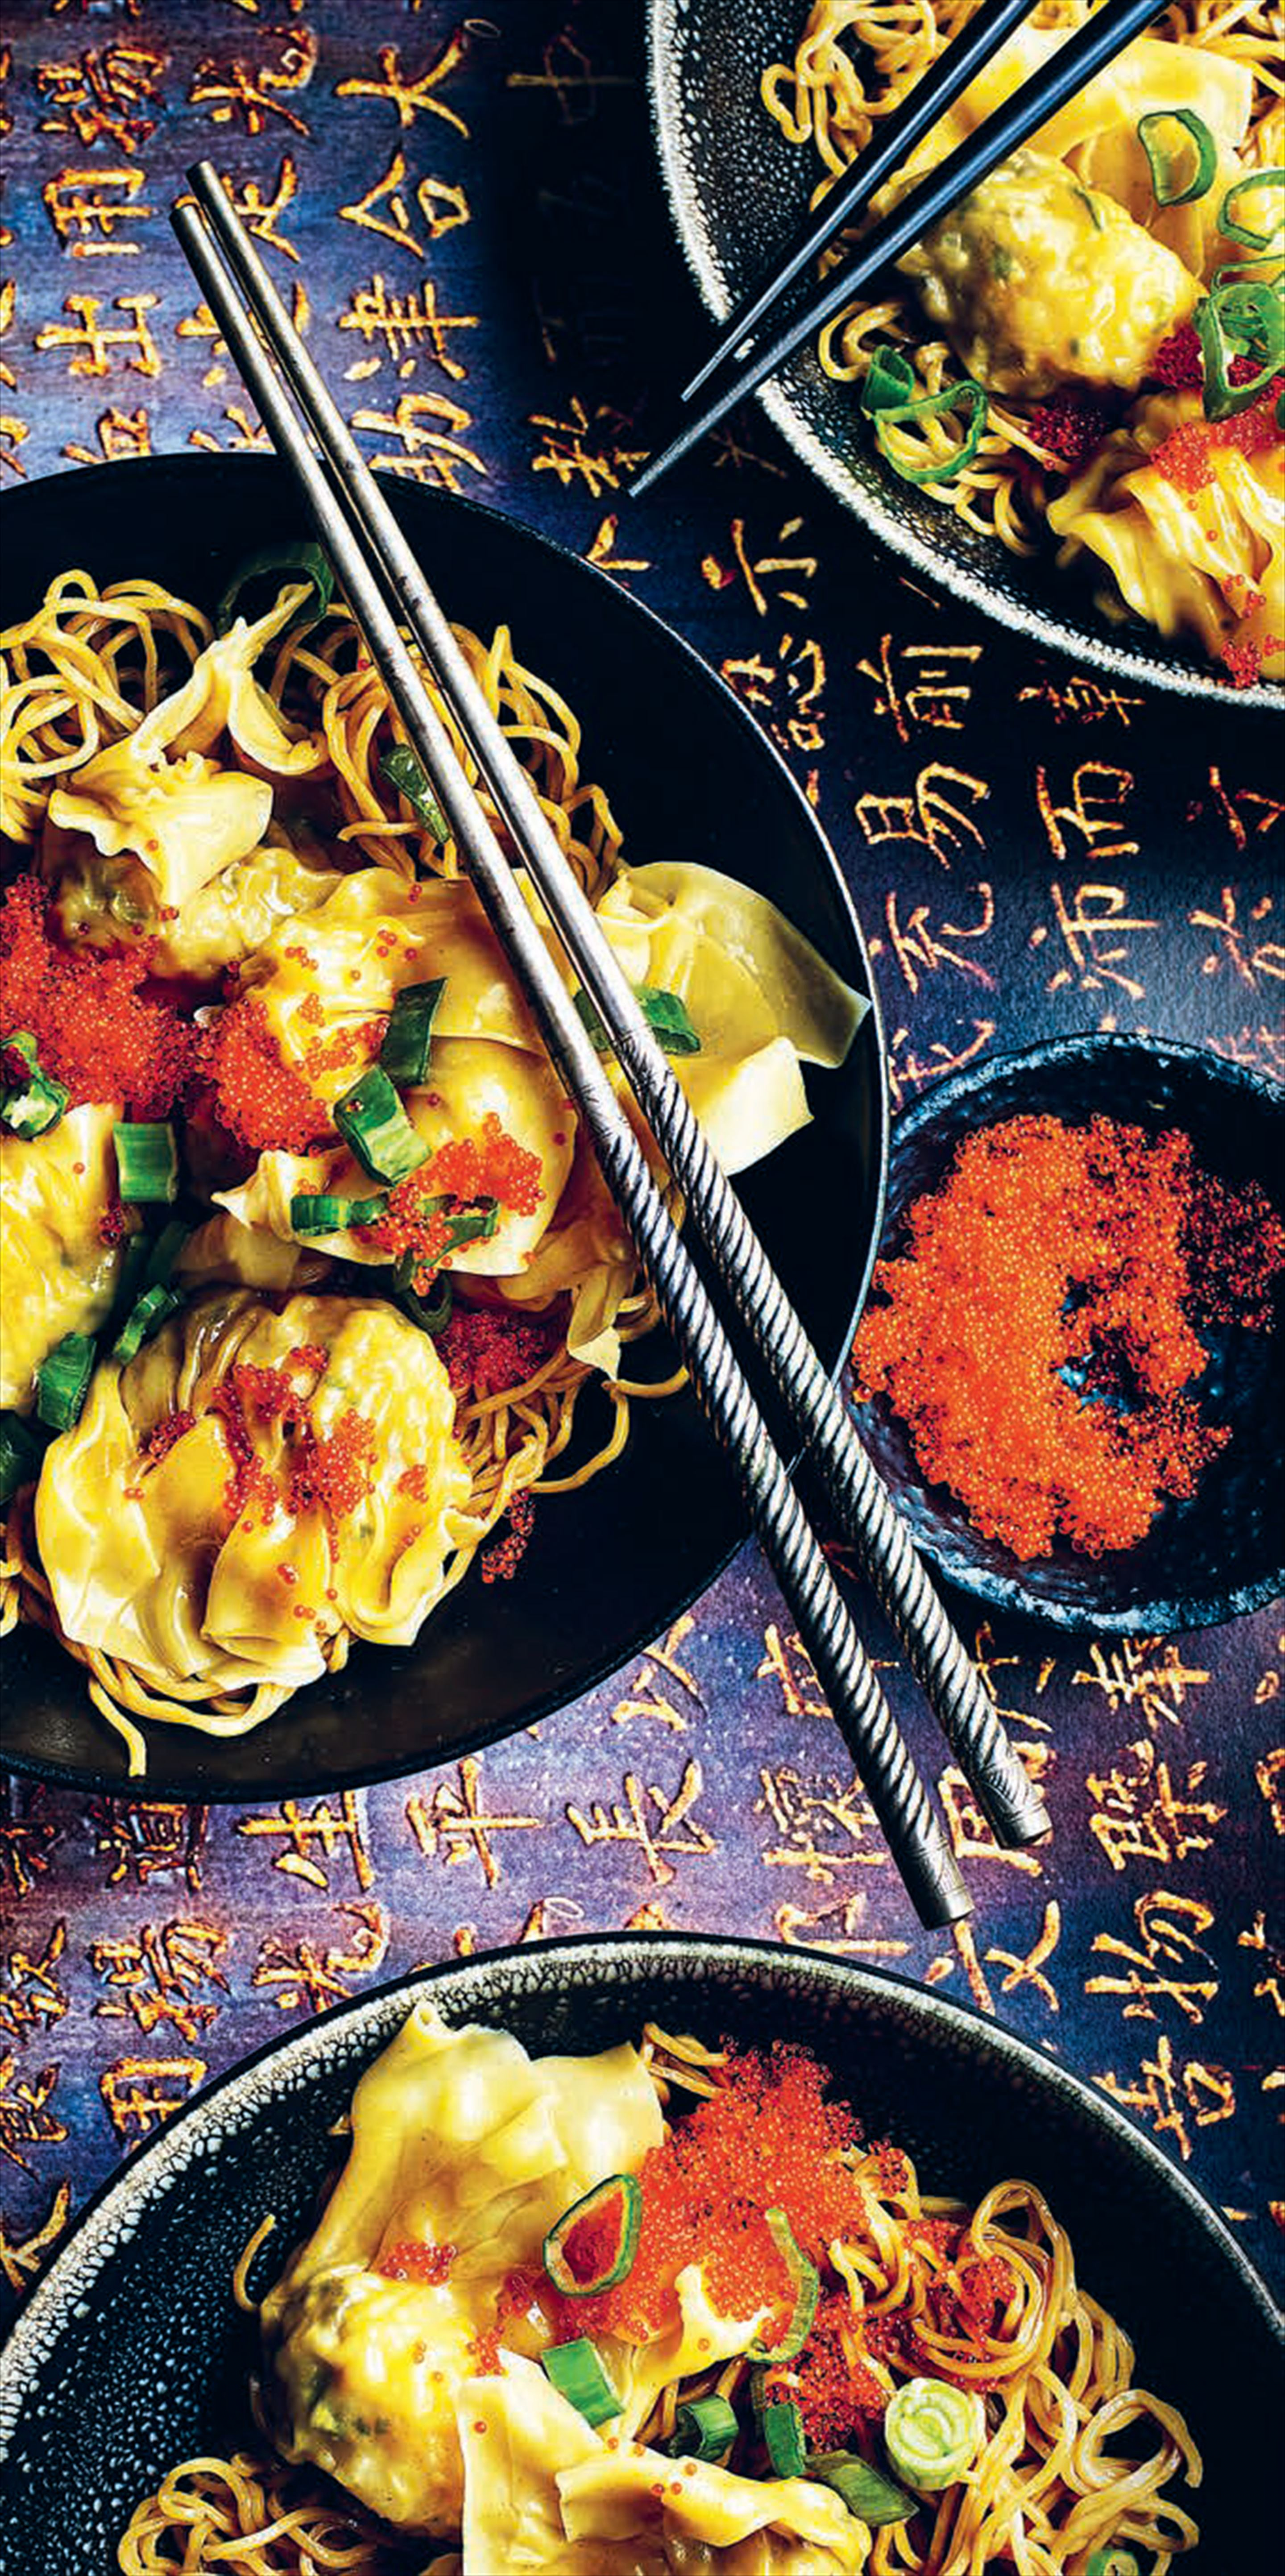 Wonton braised noodles with tobiko: the jelly fish fold